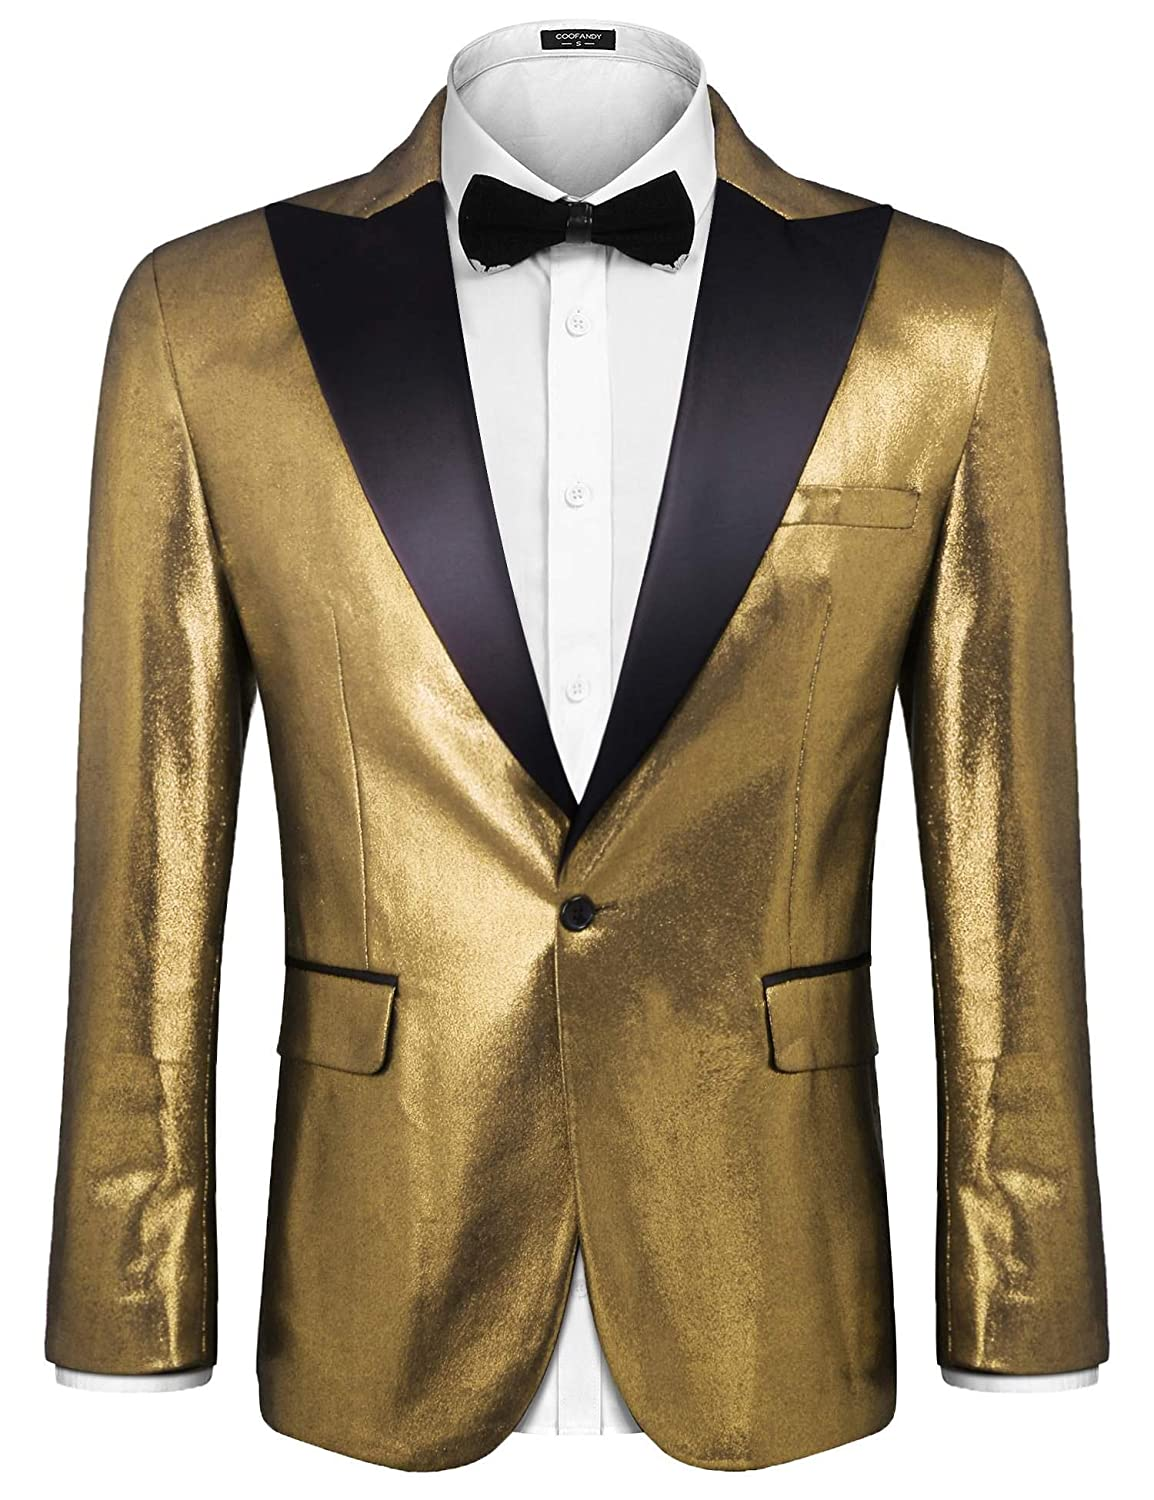 Coofandy Mens Suit Jacket Shiny One Button Tuxedo Slim Fit Blazer Coat for Dinner Wedding Party